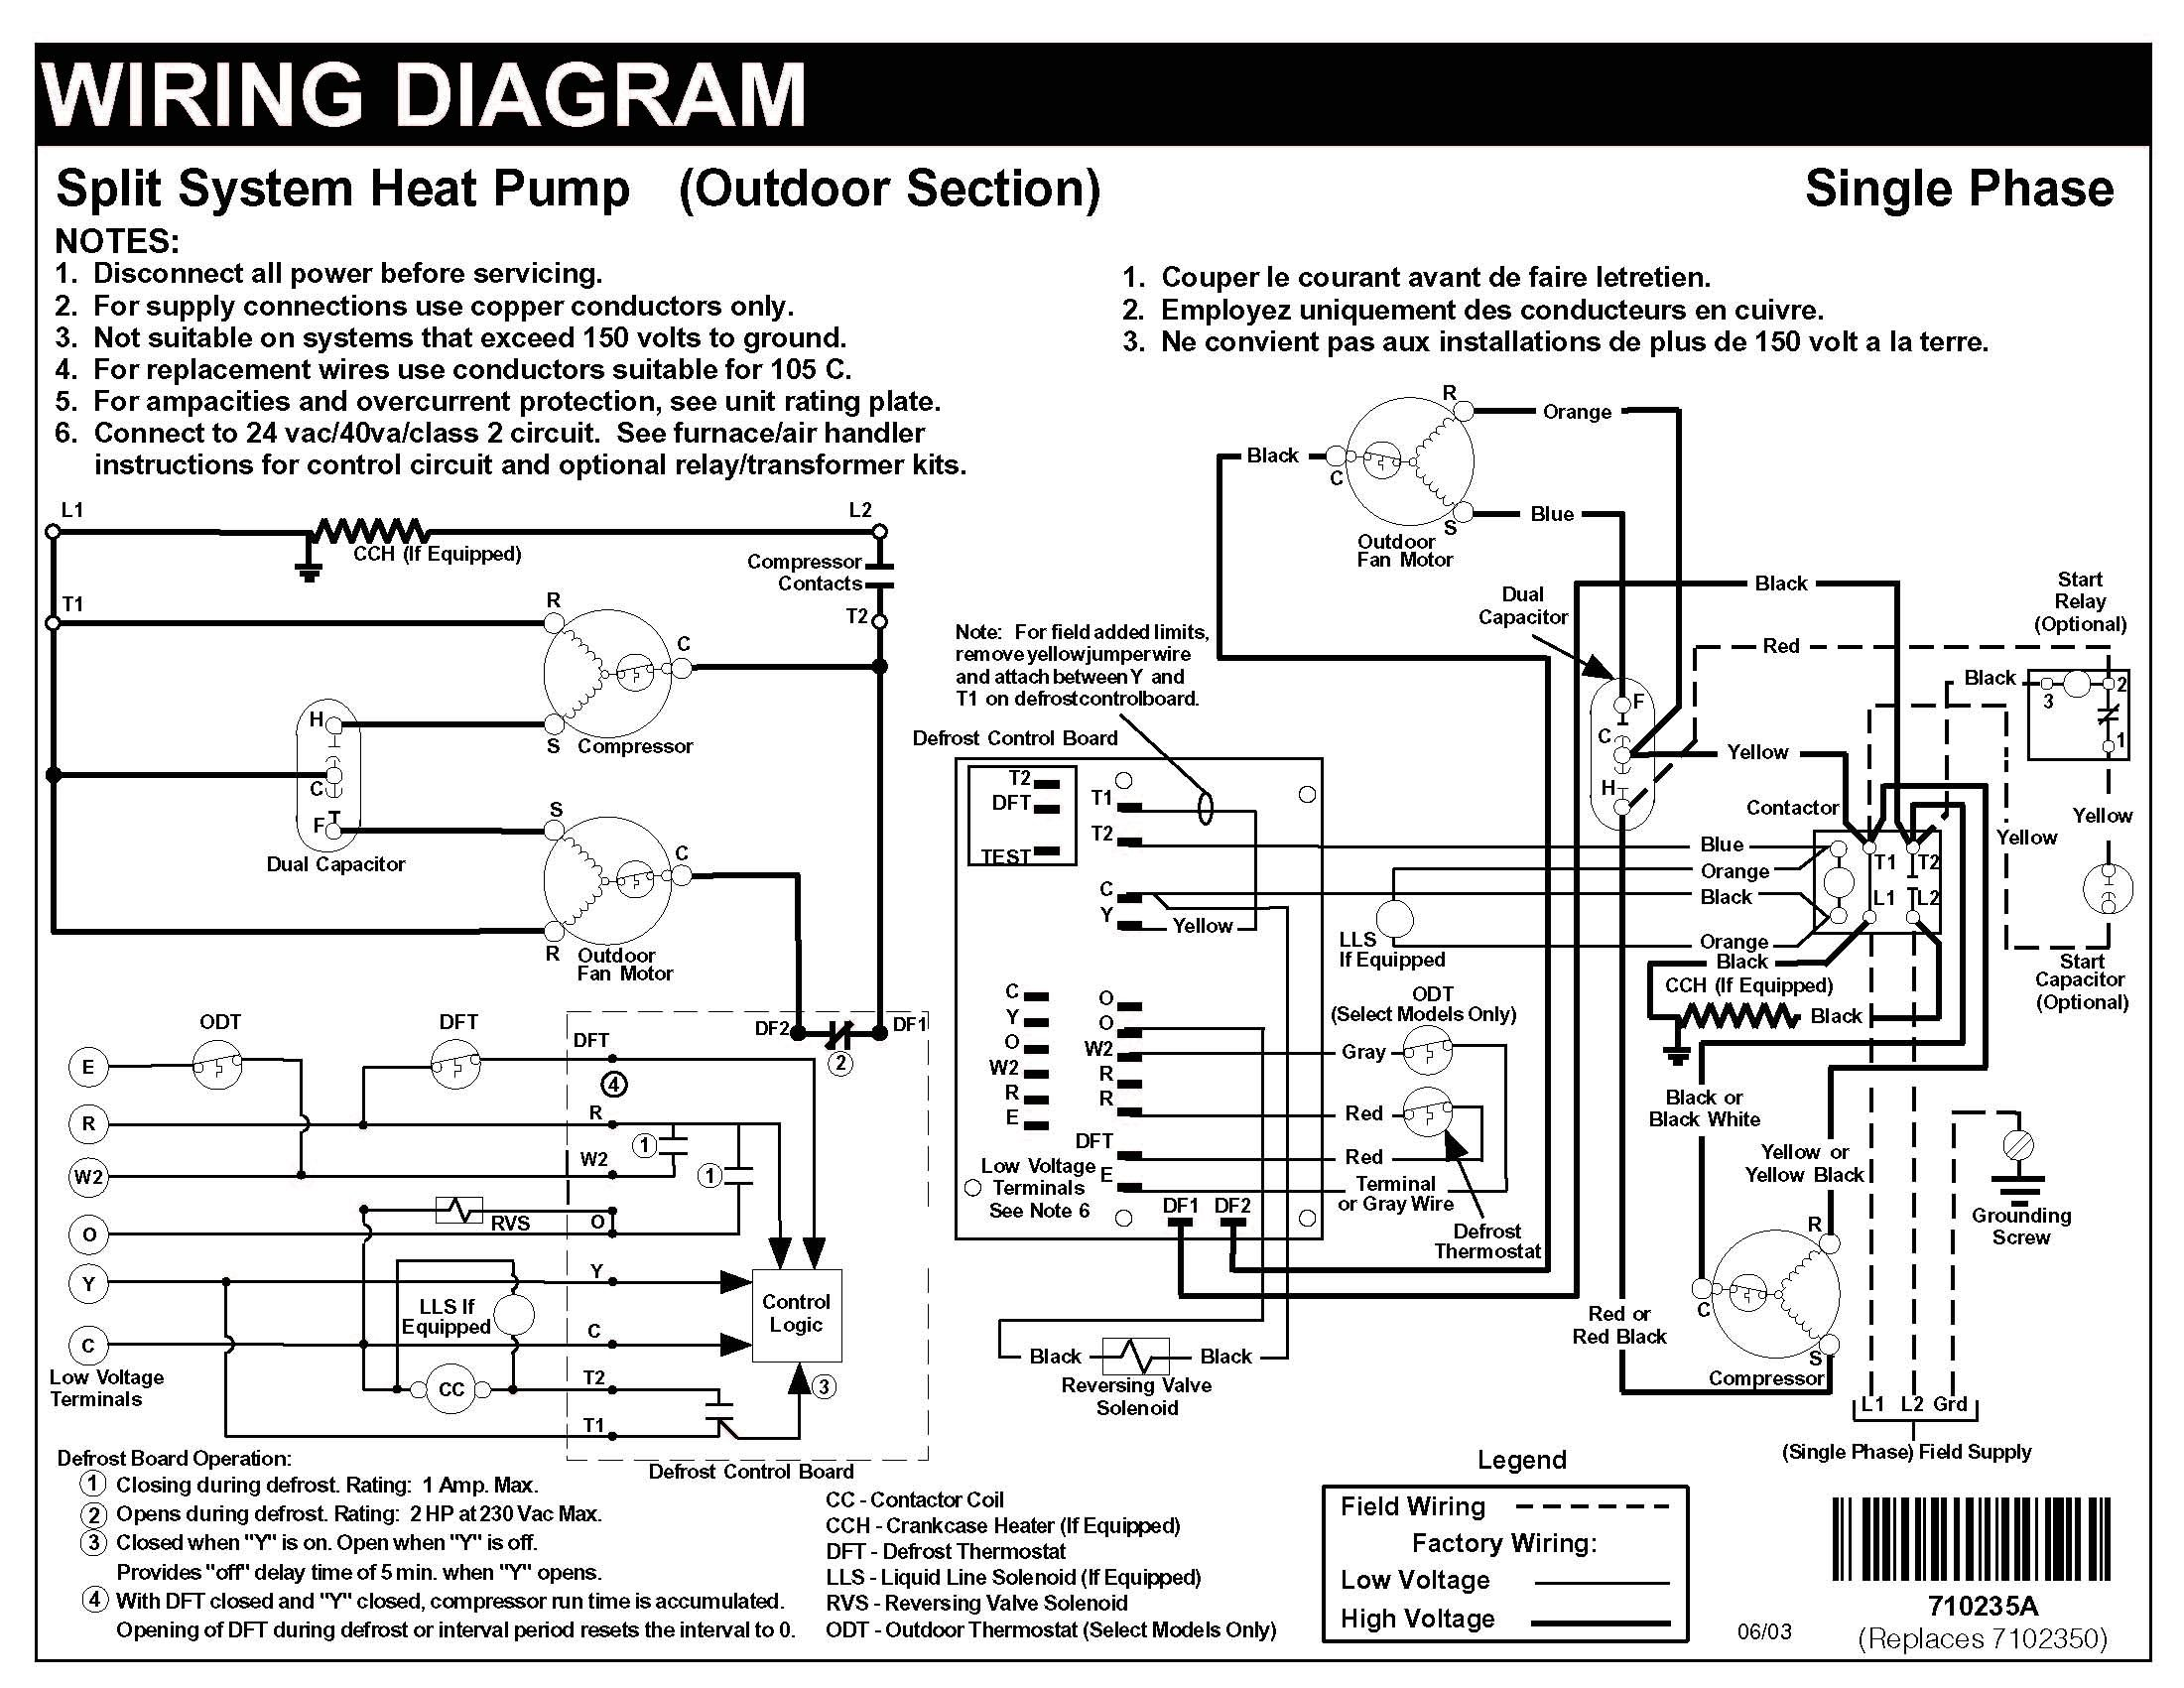 small resolution of lennox heat pump diagram wiring diagrams scematic lennox cbx diagram heat pumps residential heat pumps heat